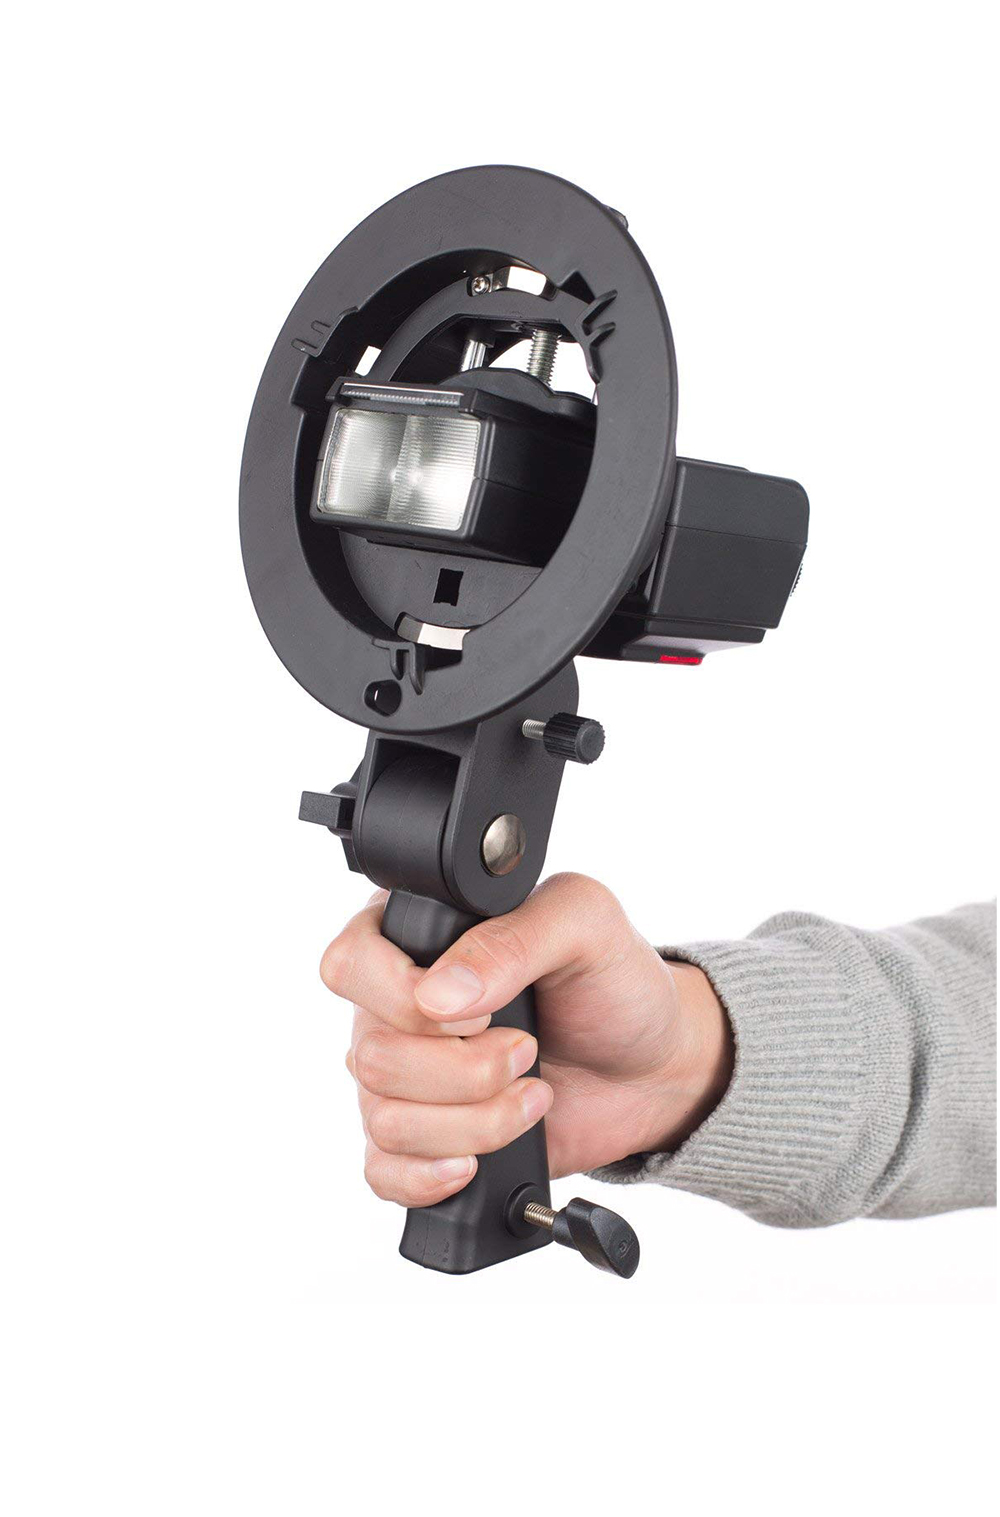 Handheld Grip S-Type Bracket Holder with Bowens Mount for Speedlite Flash Snoot Softbox Beauty Dish Photography Accessories (2)